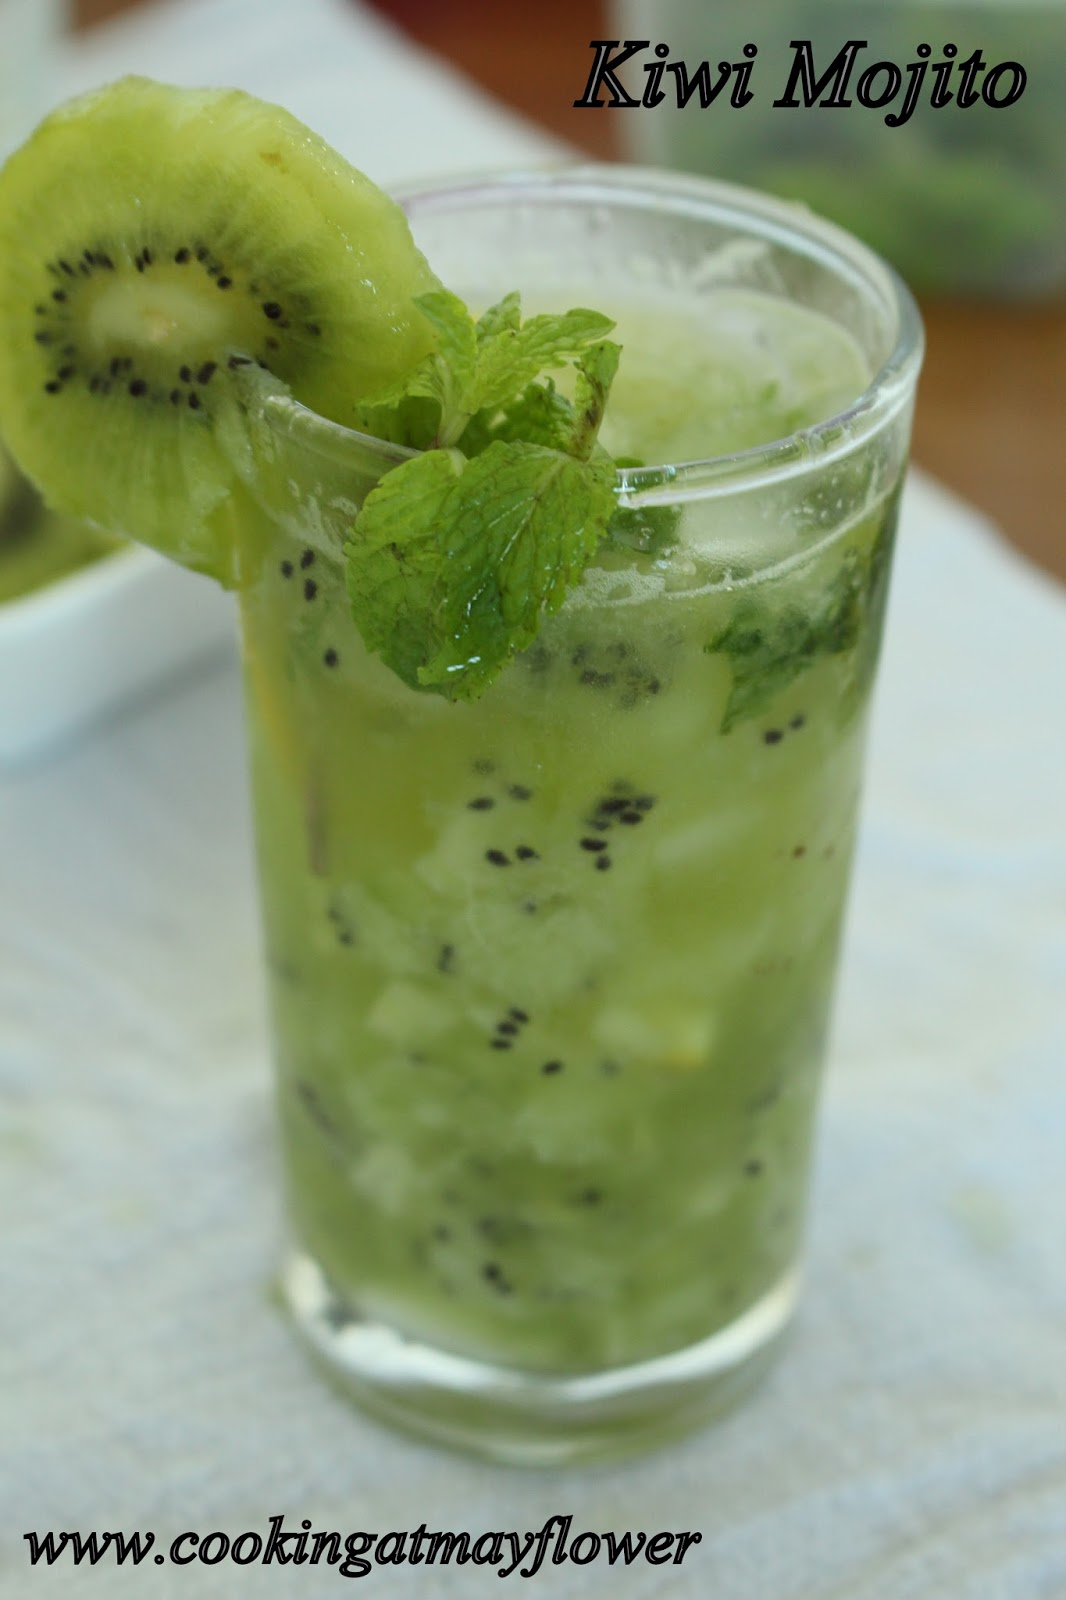 Cooking at Mayflower: Virgin Kiwi Mojito